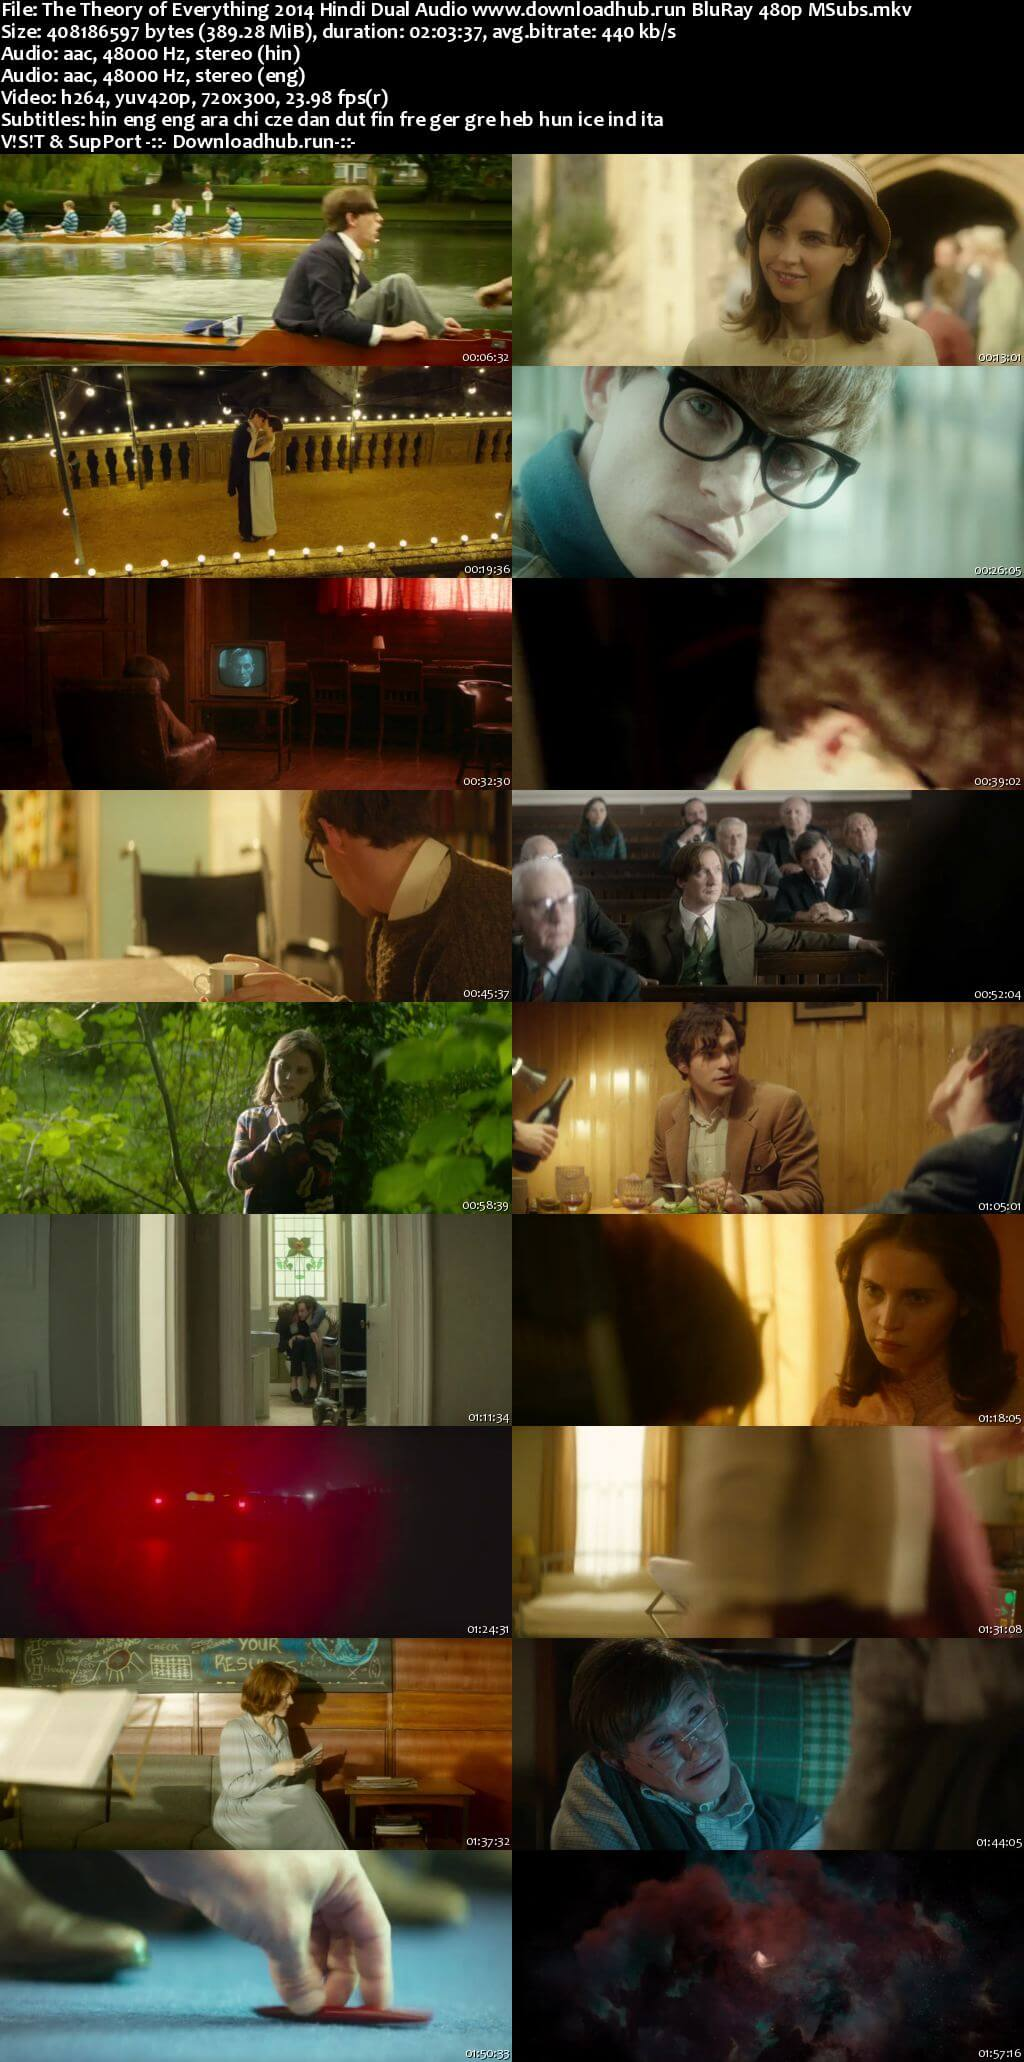 The Theory of Everything 2014 Hindi Dual Audio 350MB BluRay 480p MSubs